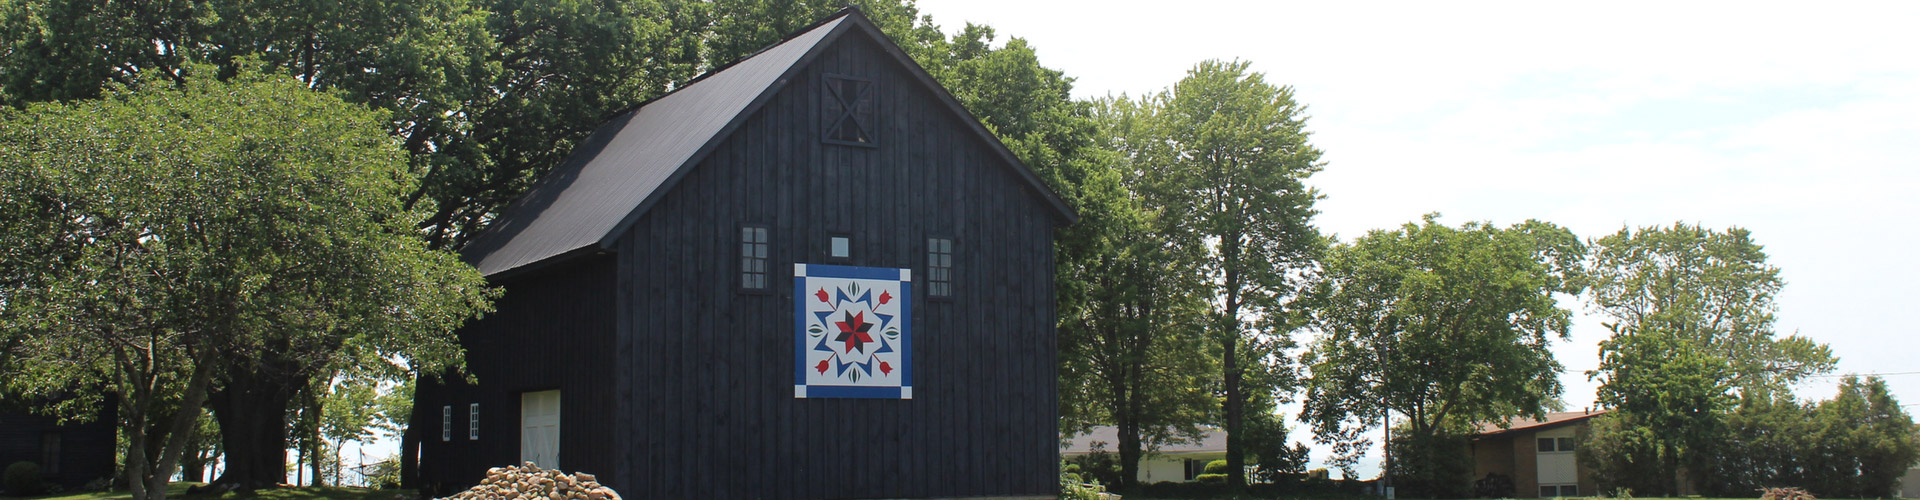 Red barn with barn quilt square on the side